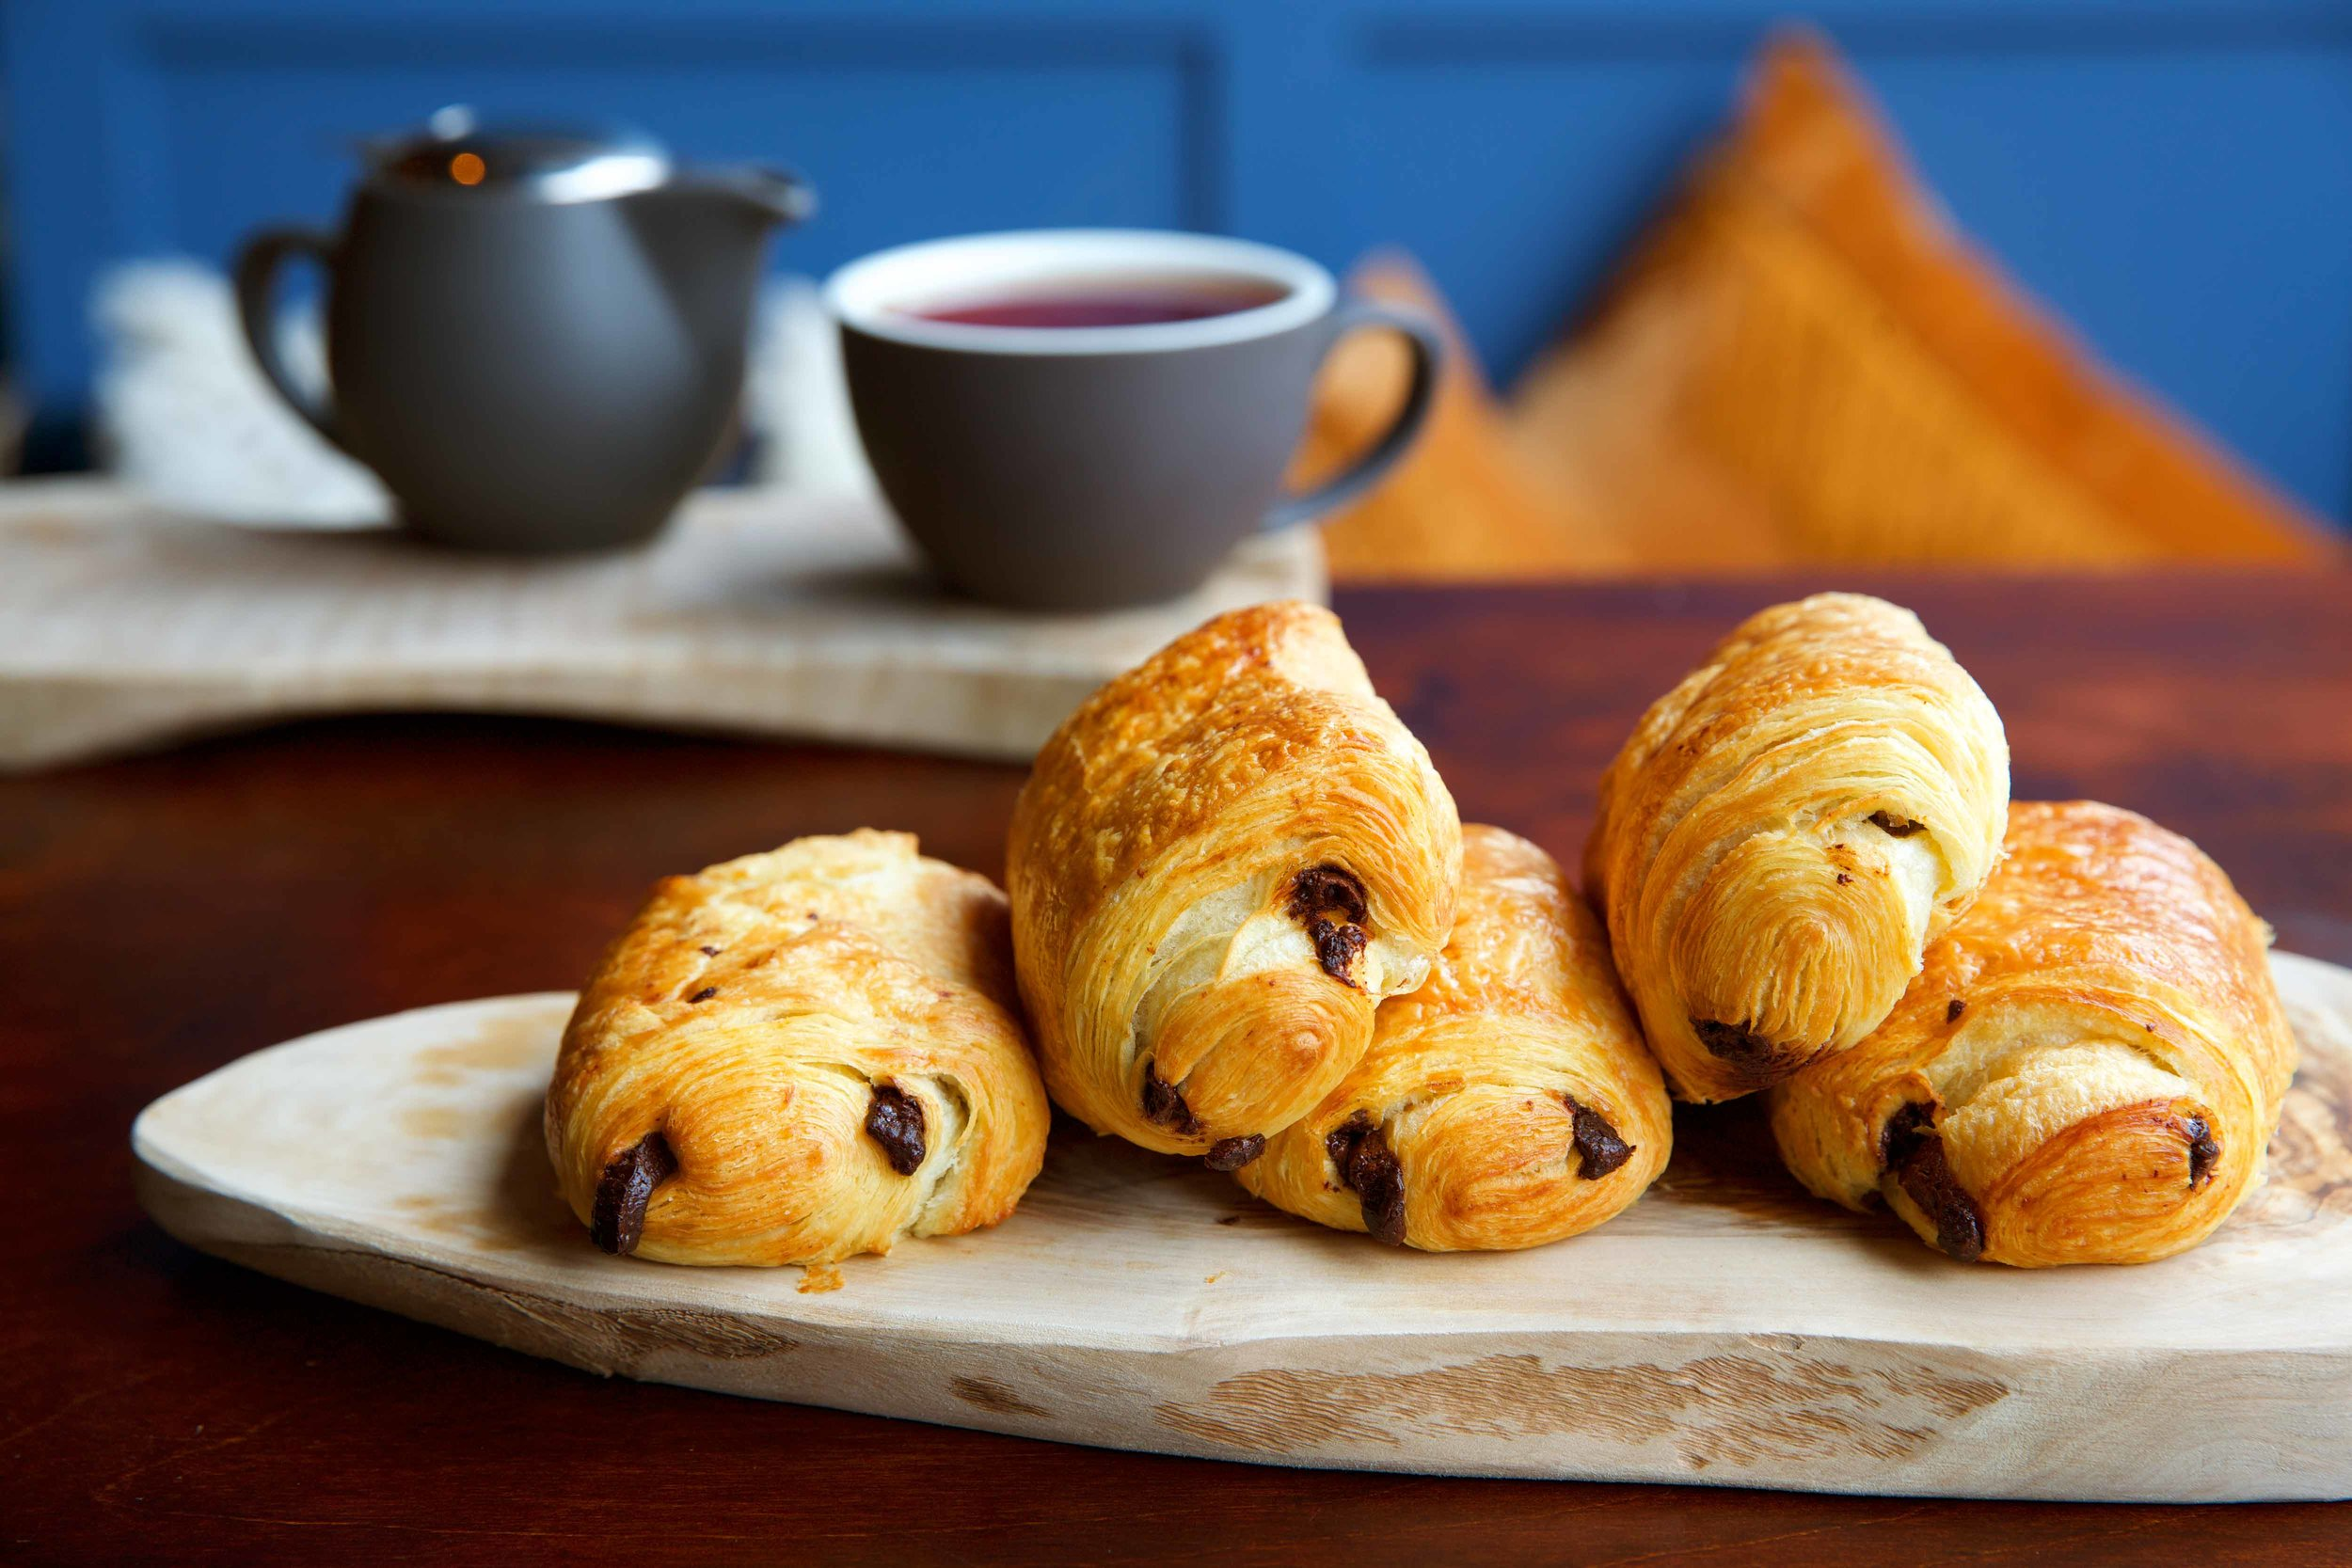 Pain au chocolat. You can't better French pastries, all that butter!